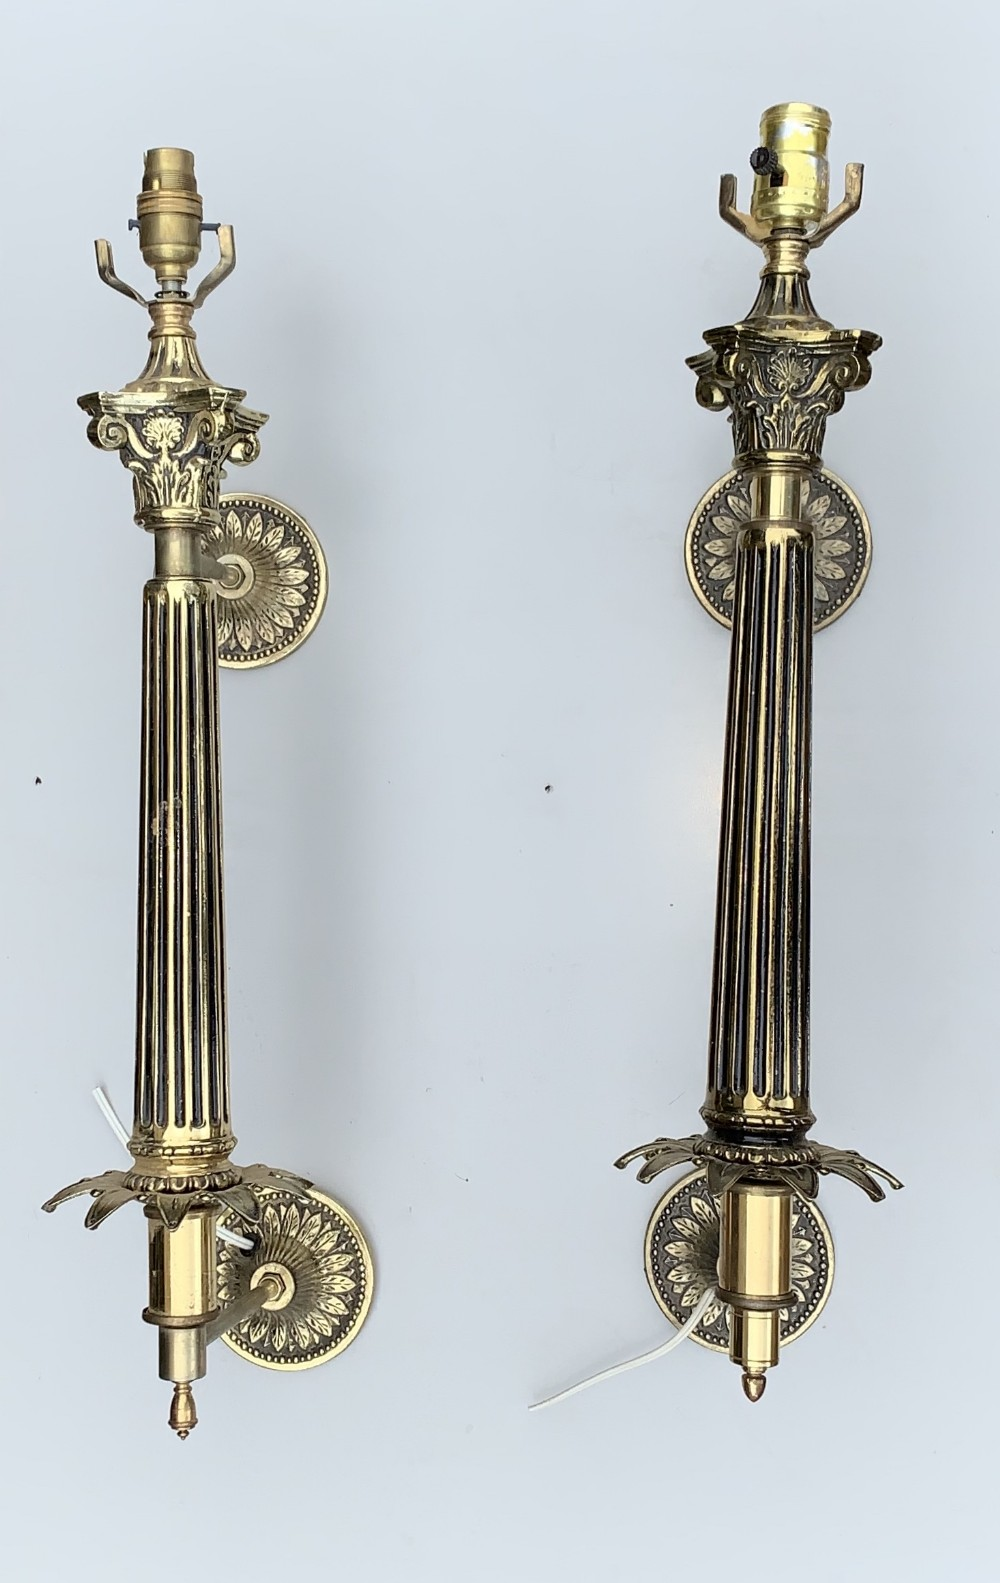 very impressive pair of brass walllights